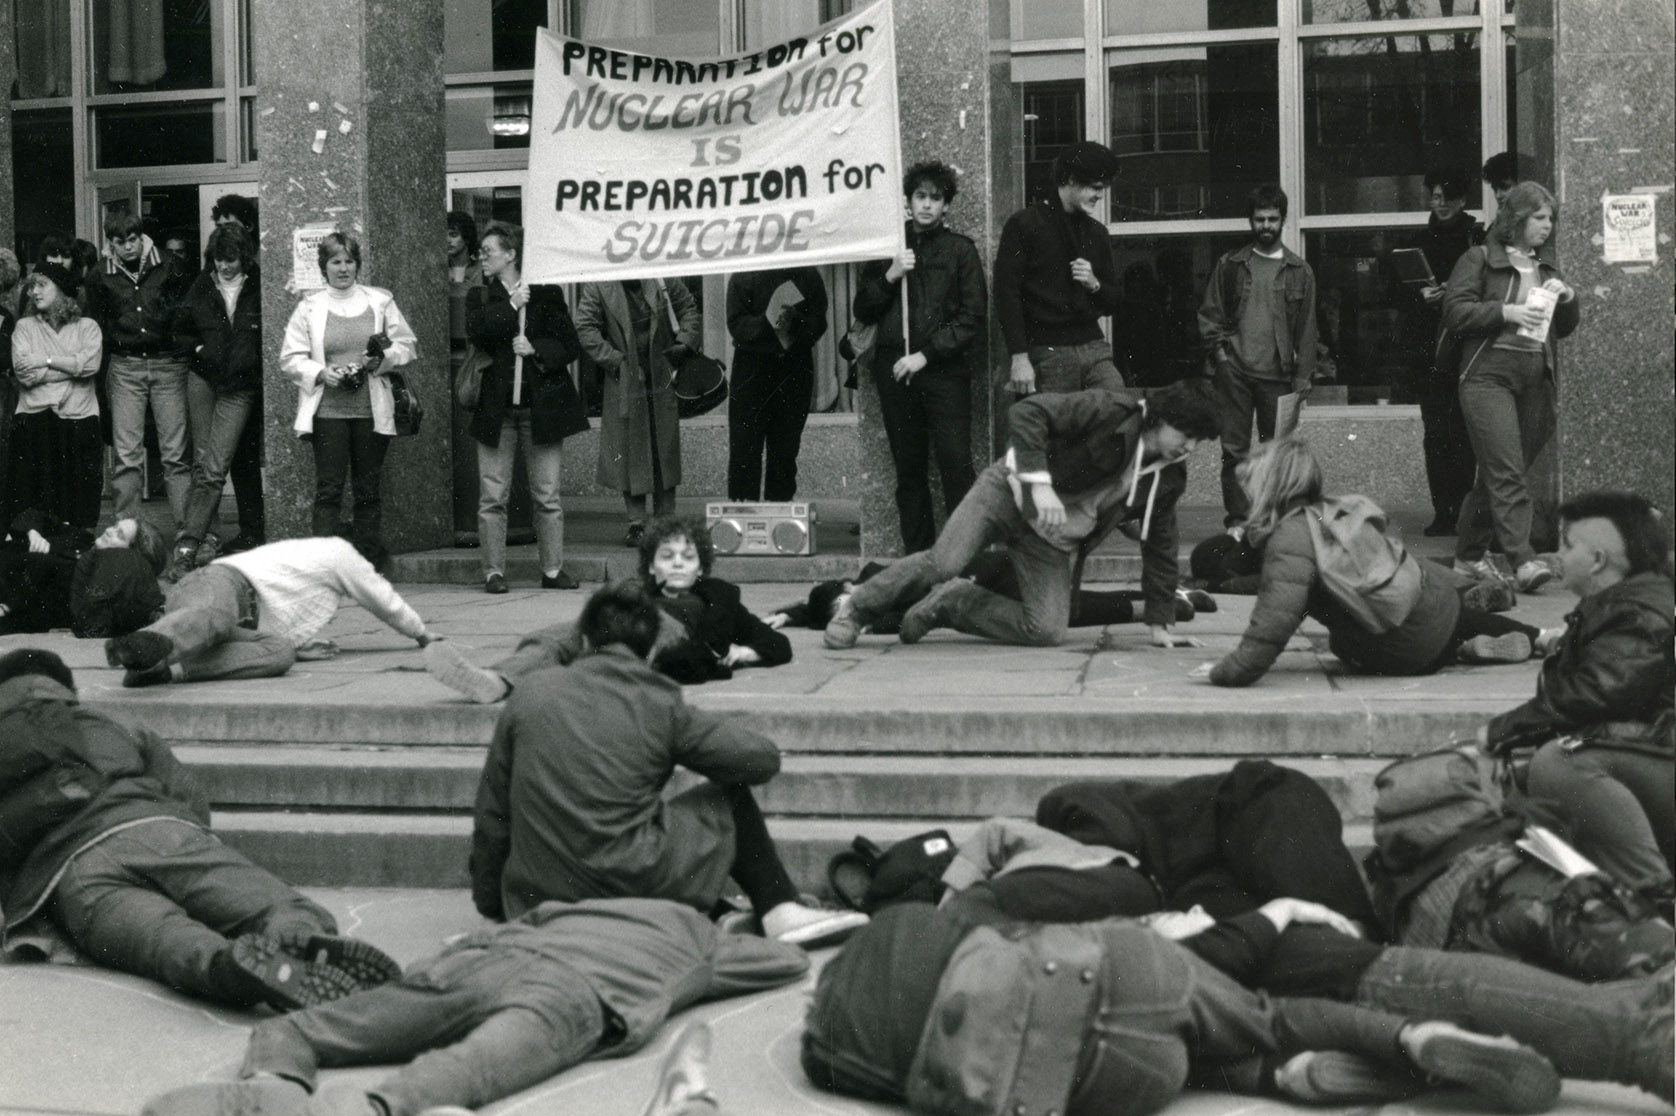 Image of Die-in at the Student Union